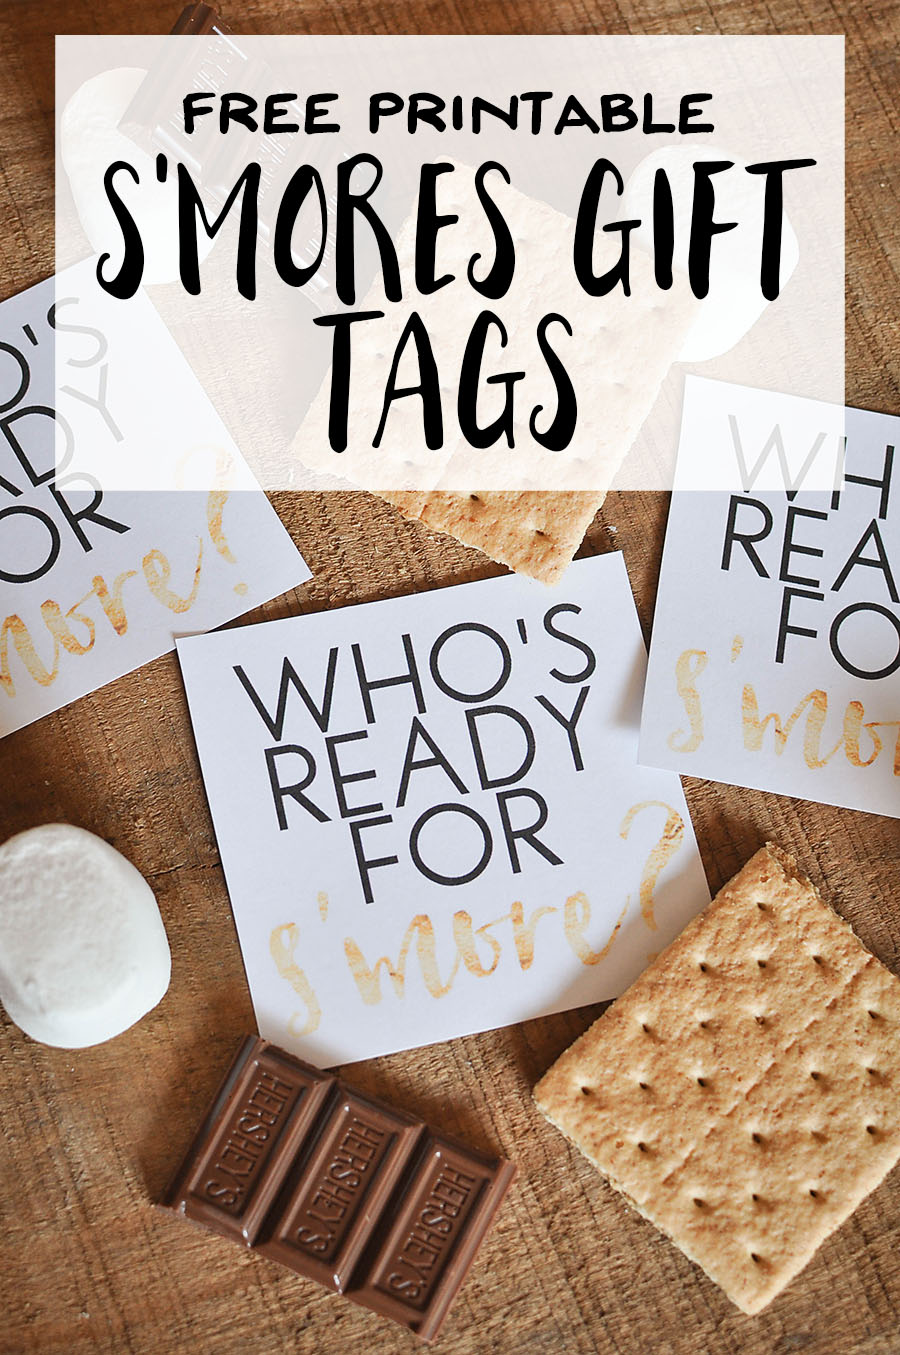 Free Printable S'mores Gift Tags - Our Handcrafted Life